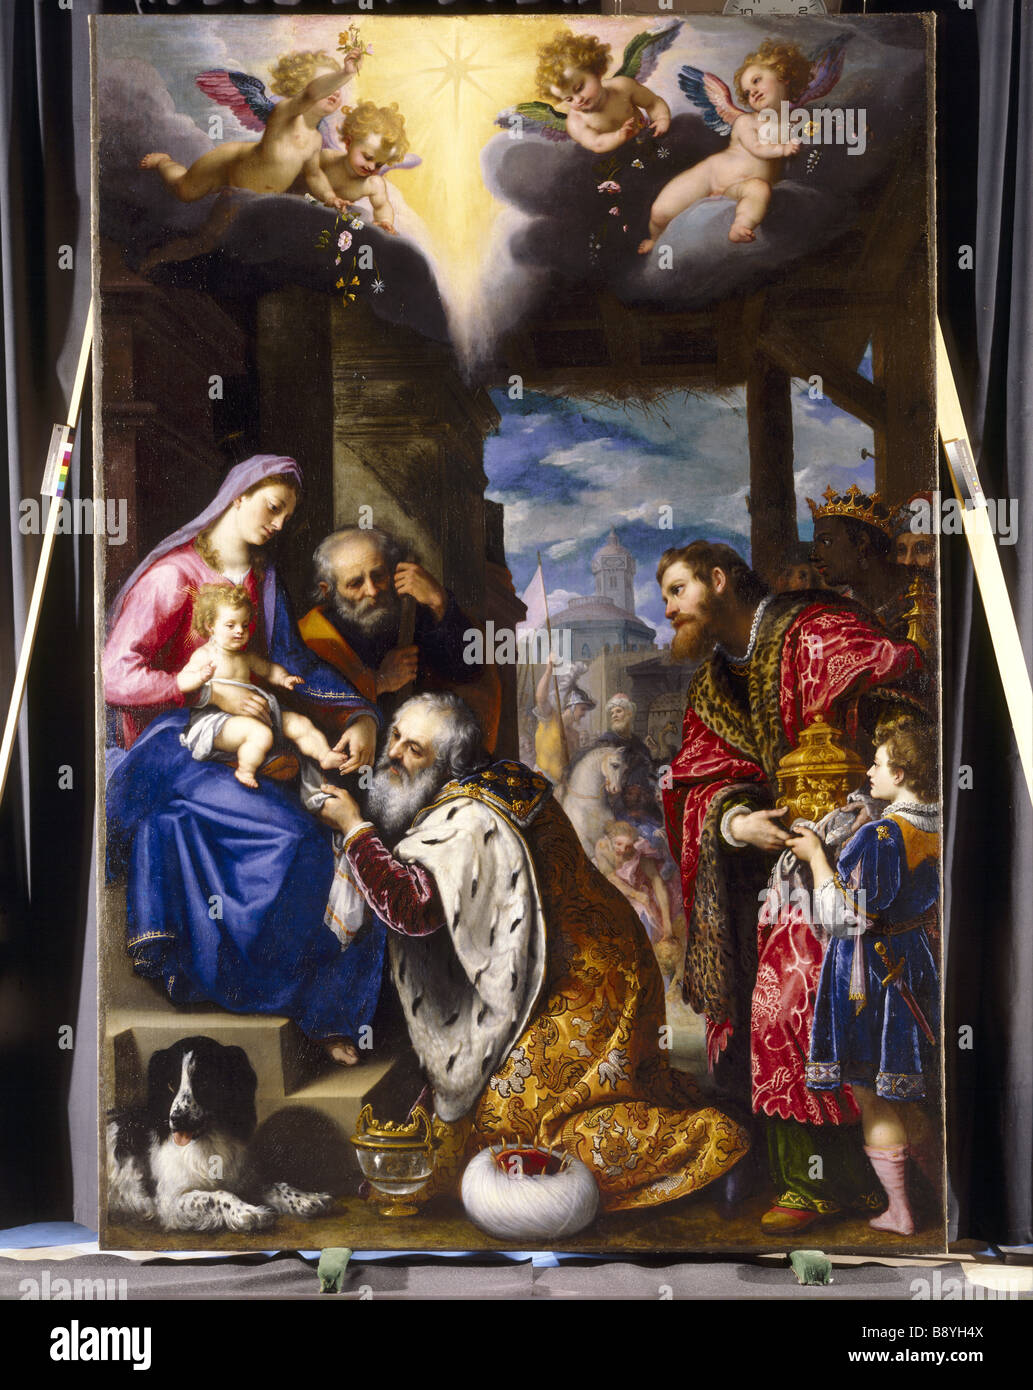 ADORATION OF THE MAGI By Cigoli Signed And Dated 1605 At